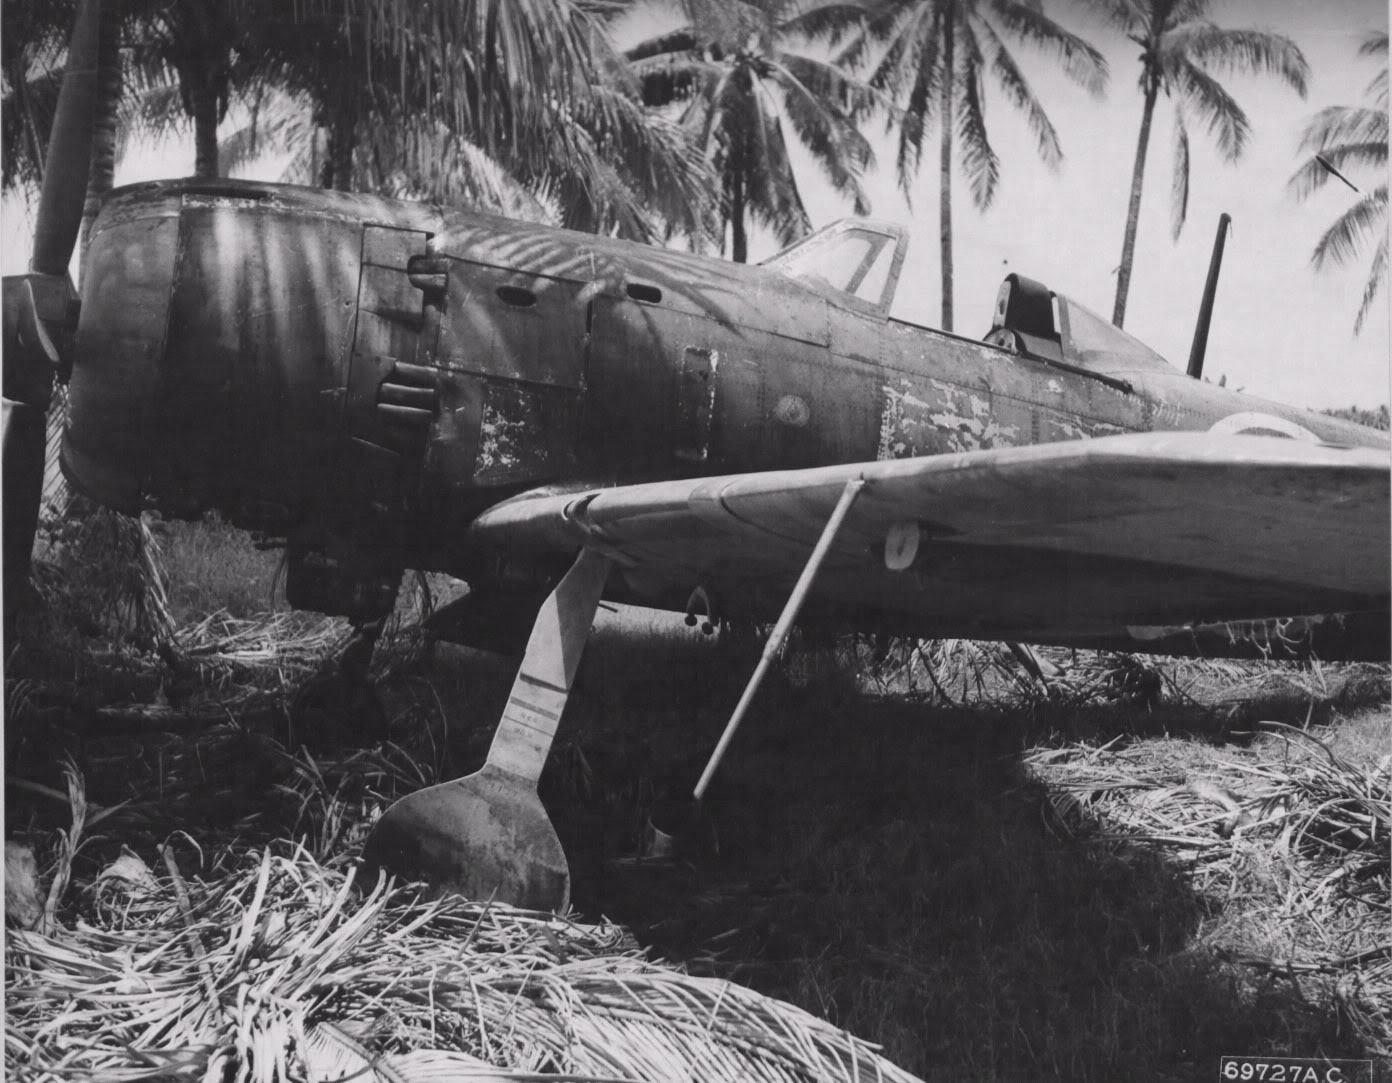 Ki-84_hayate_unknown-sentai_captrd_Cebu-IS_PI_1945-NARA-1.jpg